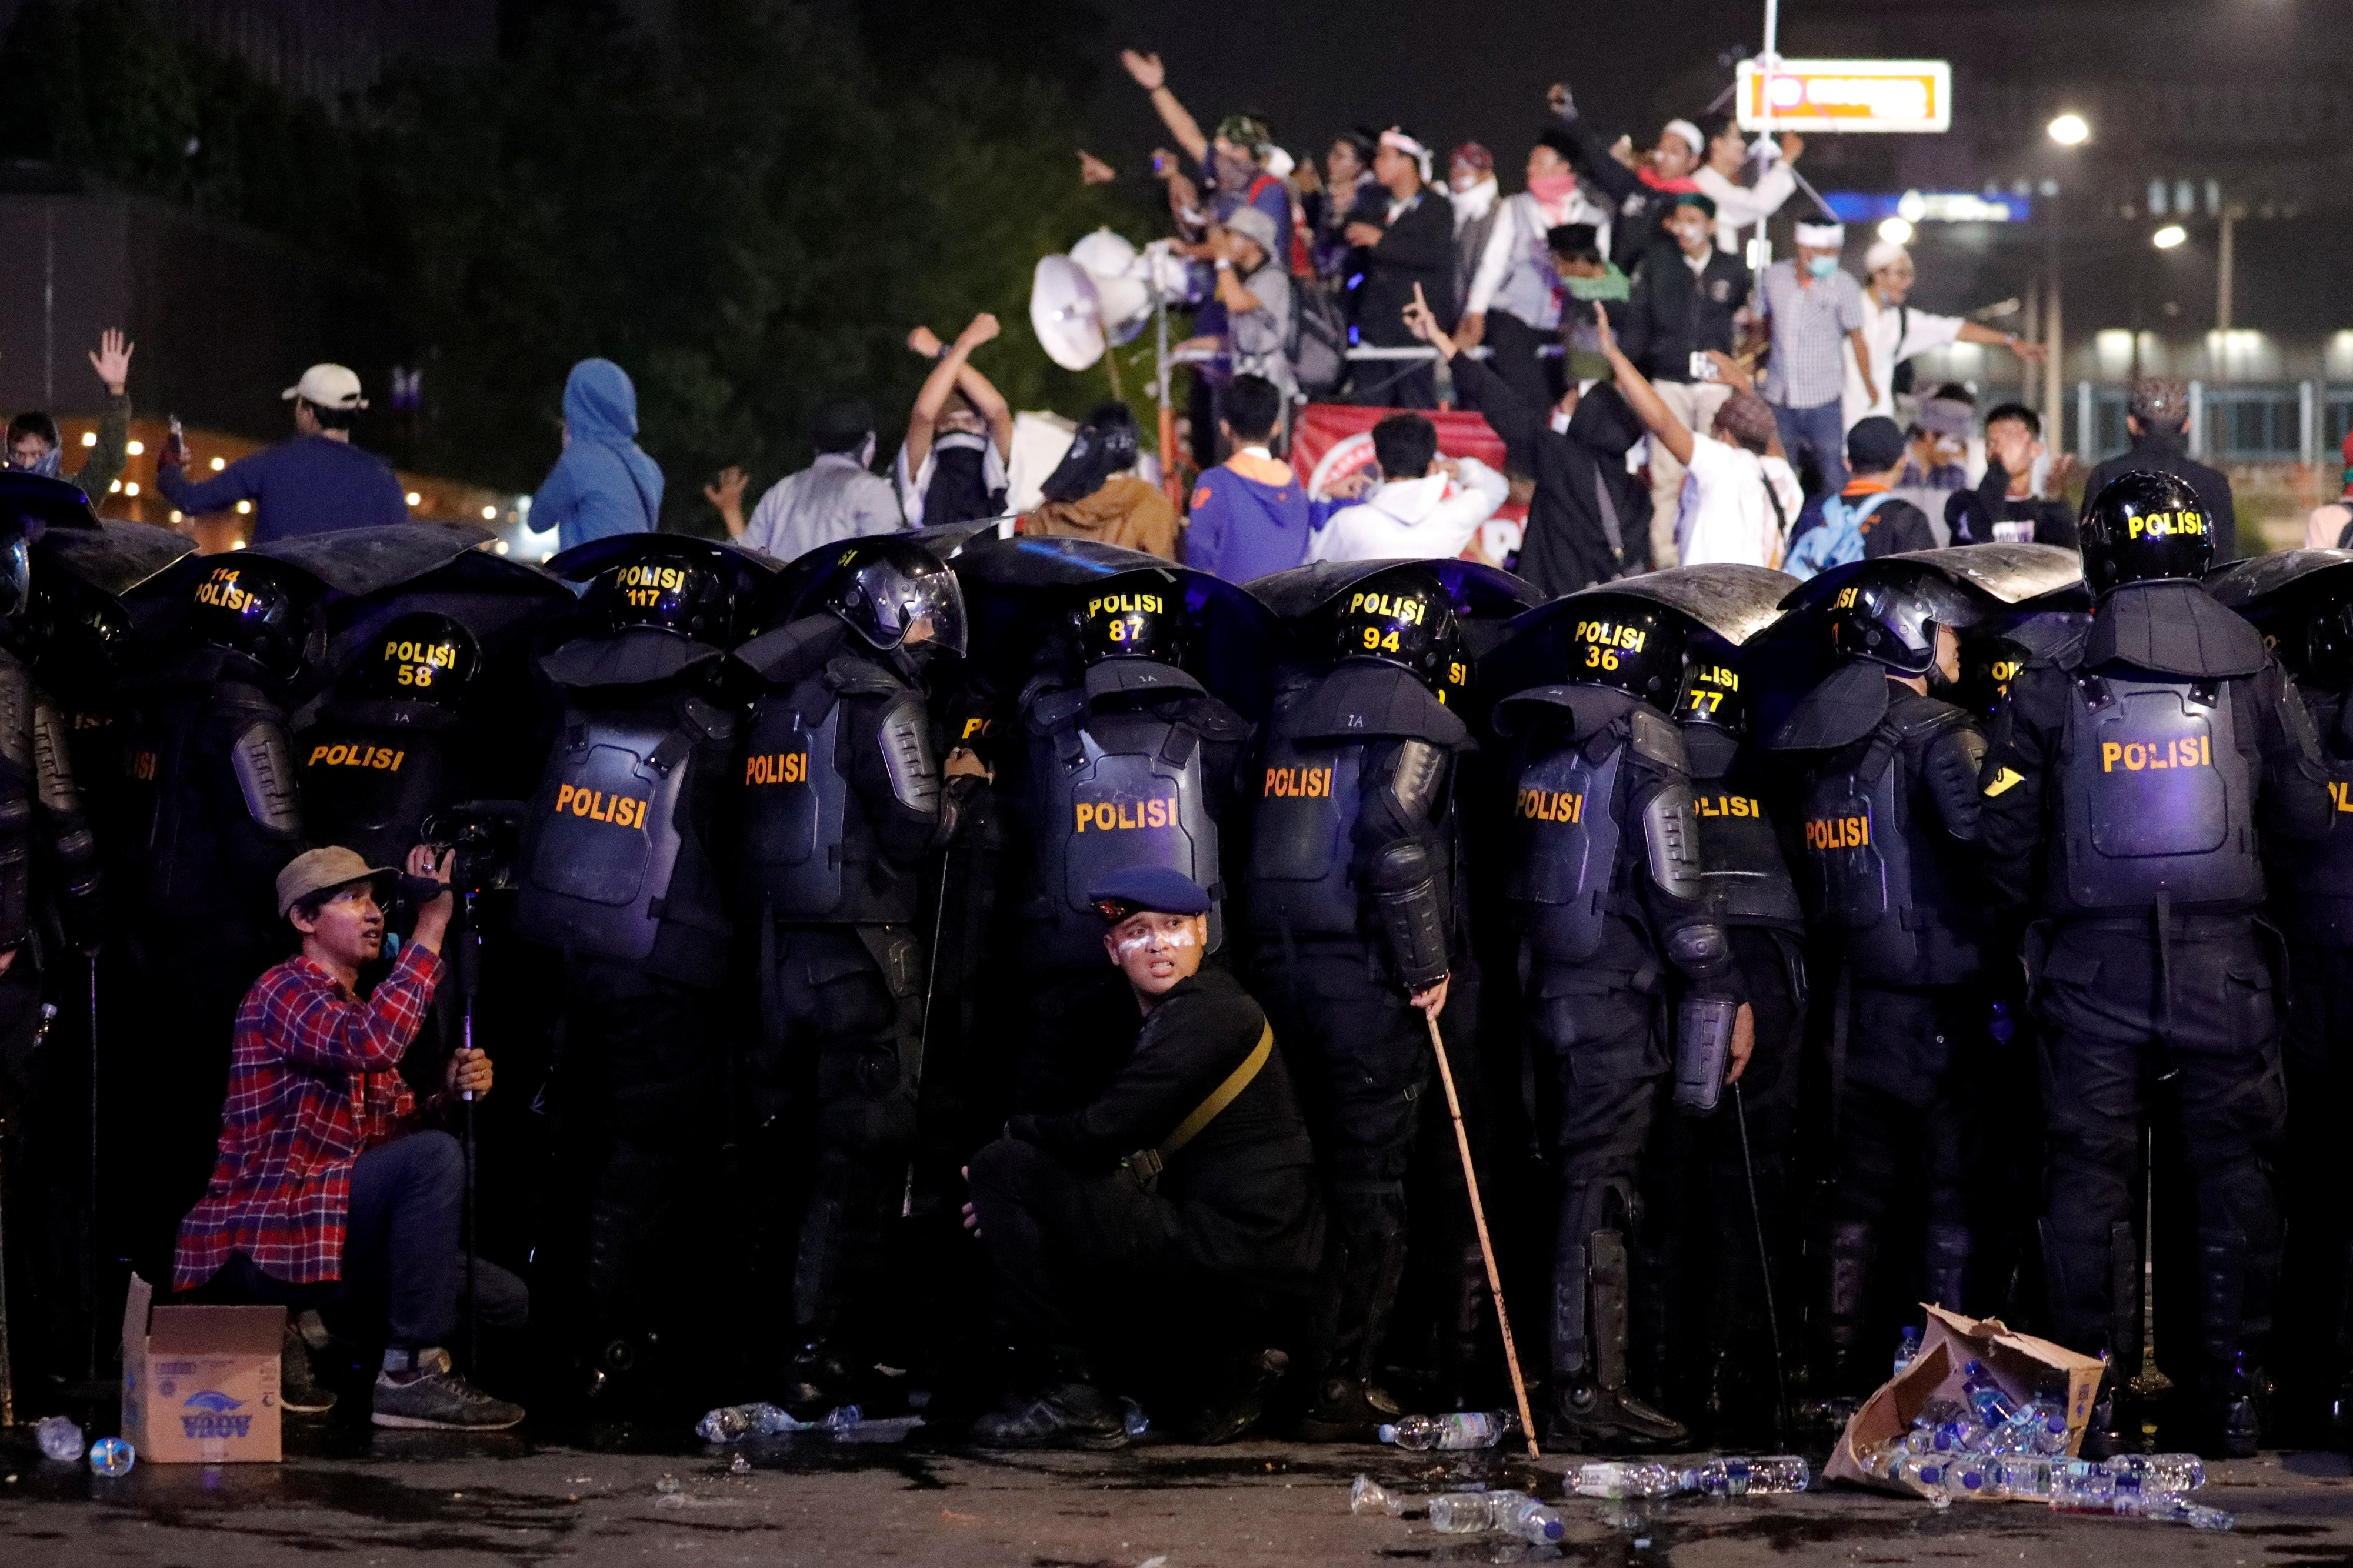 Indonesia riots: Prabowo Subianto tells supporters to go home after